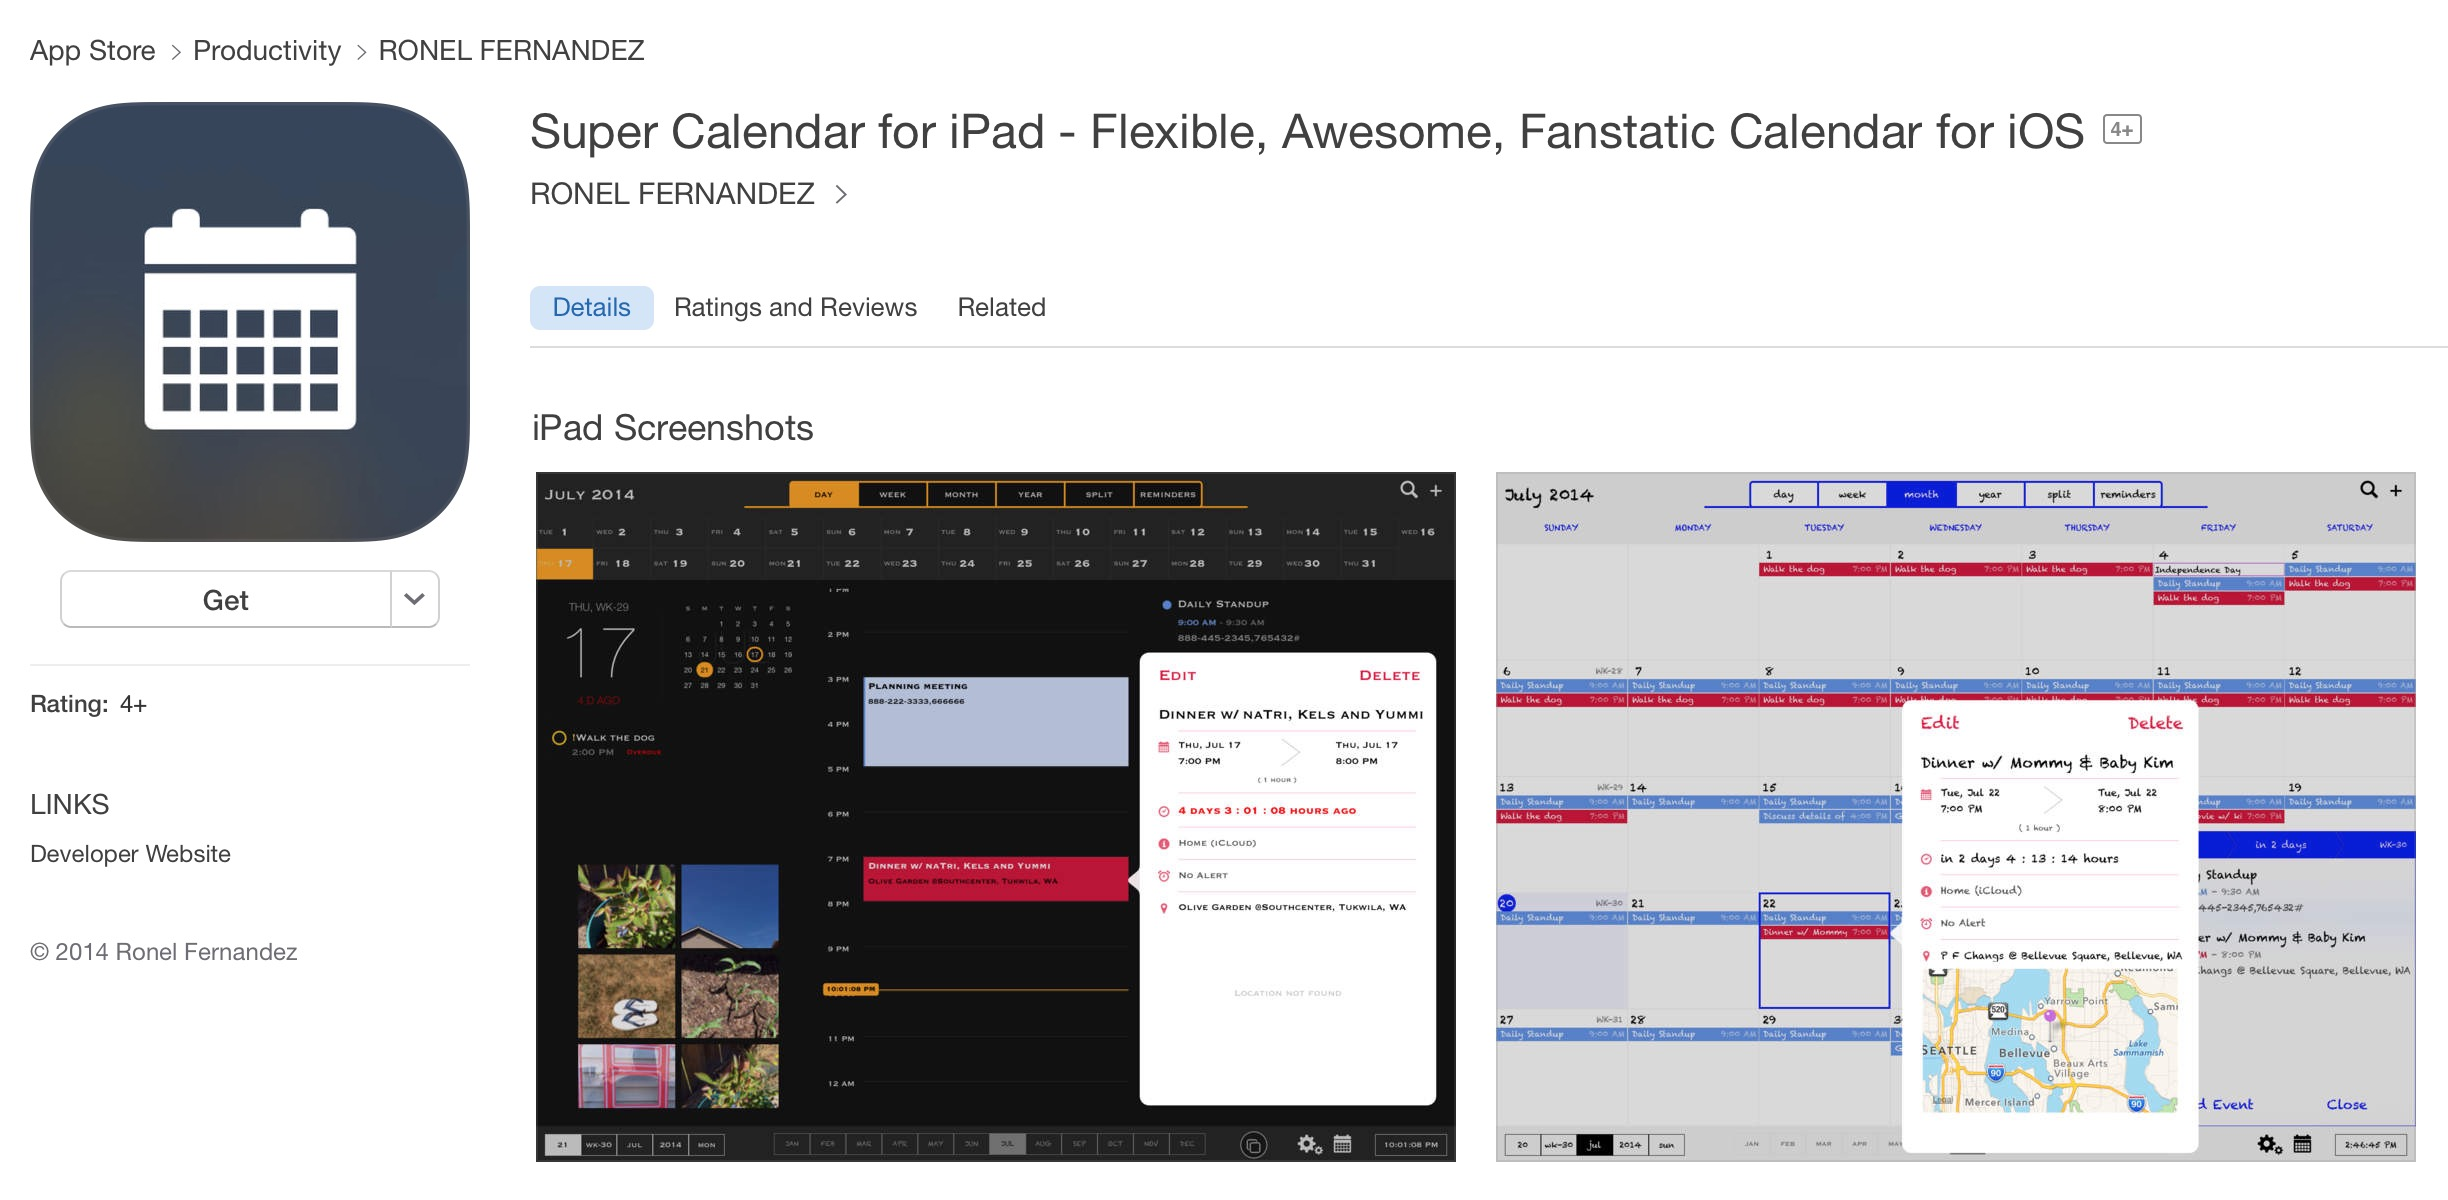 Super Calendar for iPad - Flexible, Awesome, Fanstatic Calendar for iOS